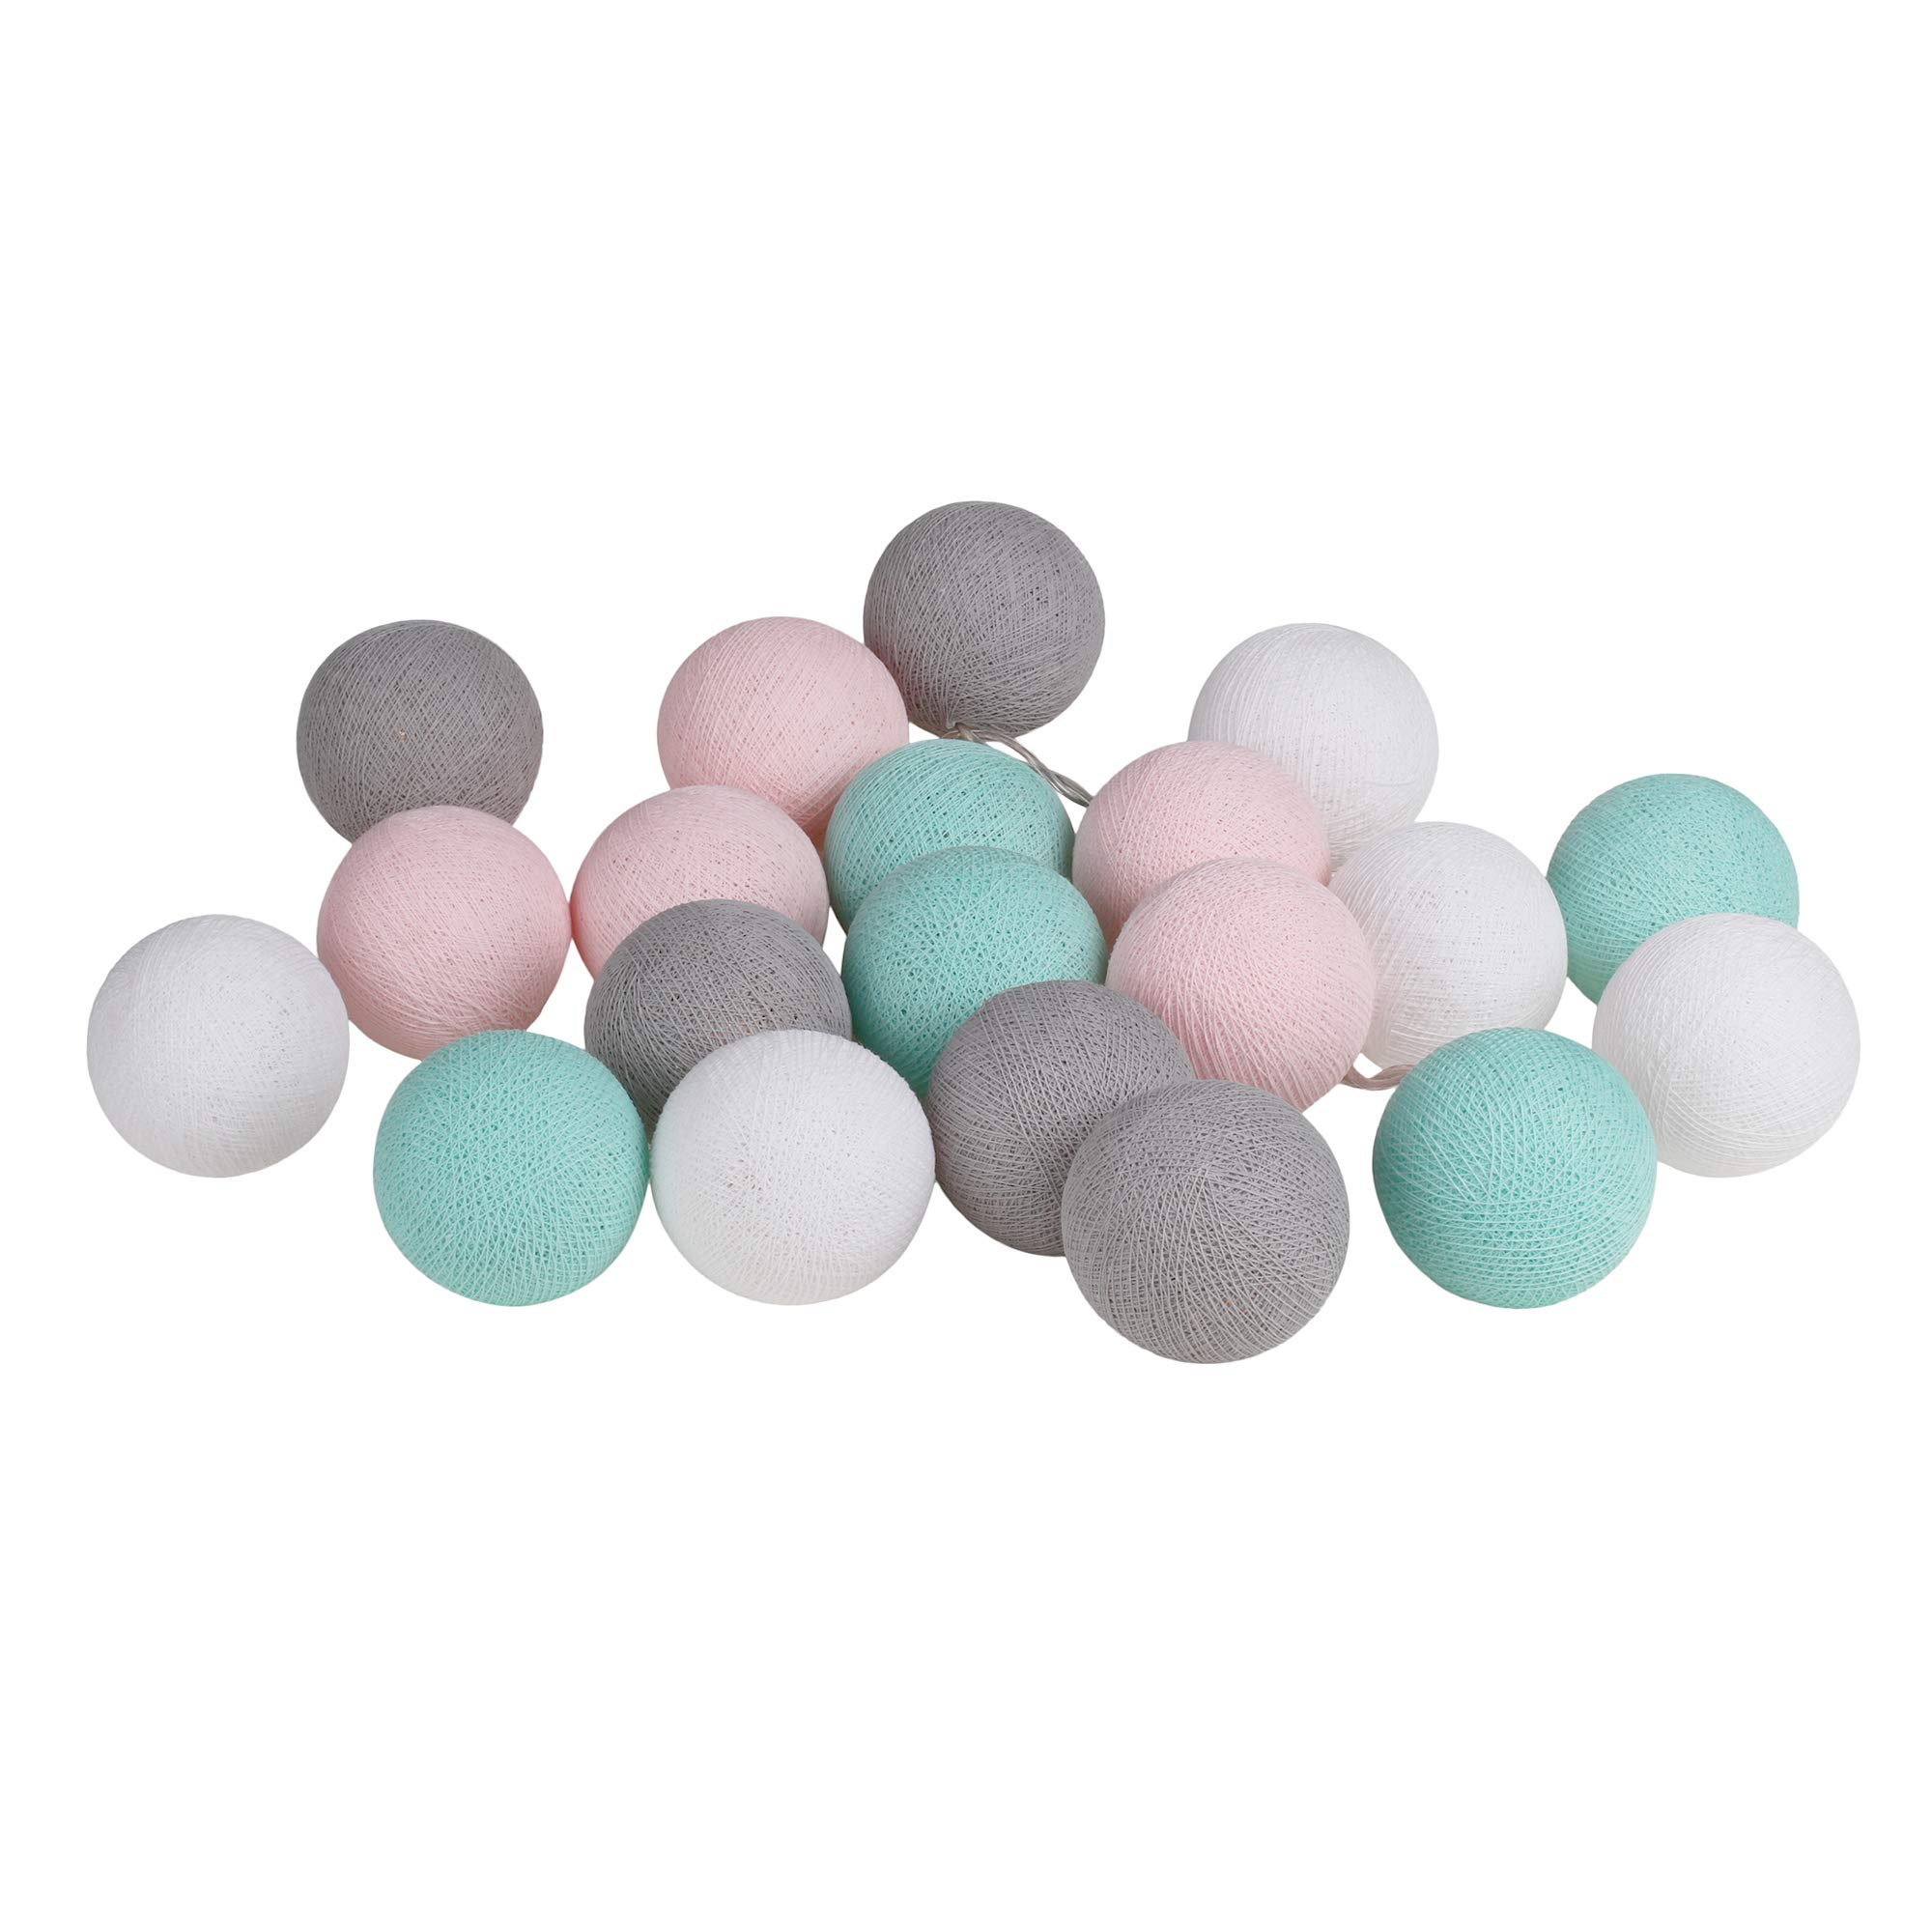 CHAINUPON 20 Cotton Ball String Fairy Night Lights Kid Bedroom Home Decor Boys Girls Plug in (Pink Gray Green)